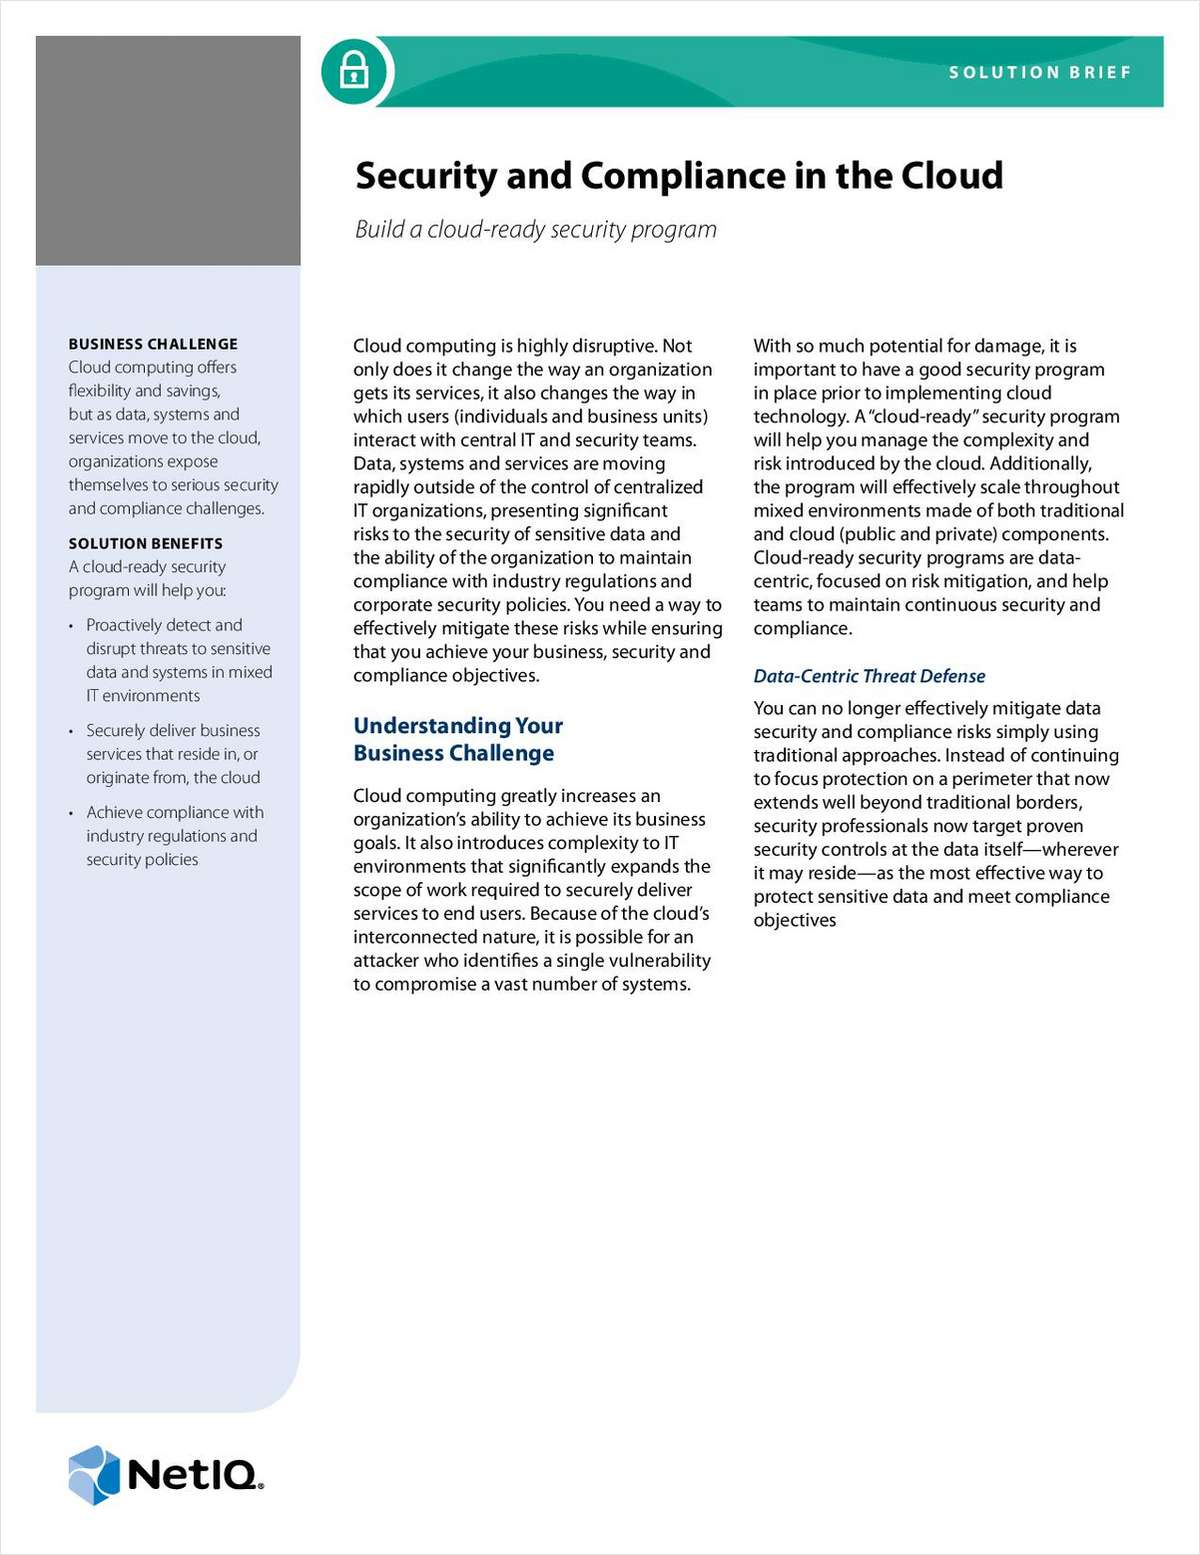 Security and Compliance in the Cloud